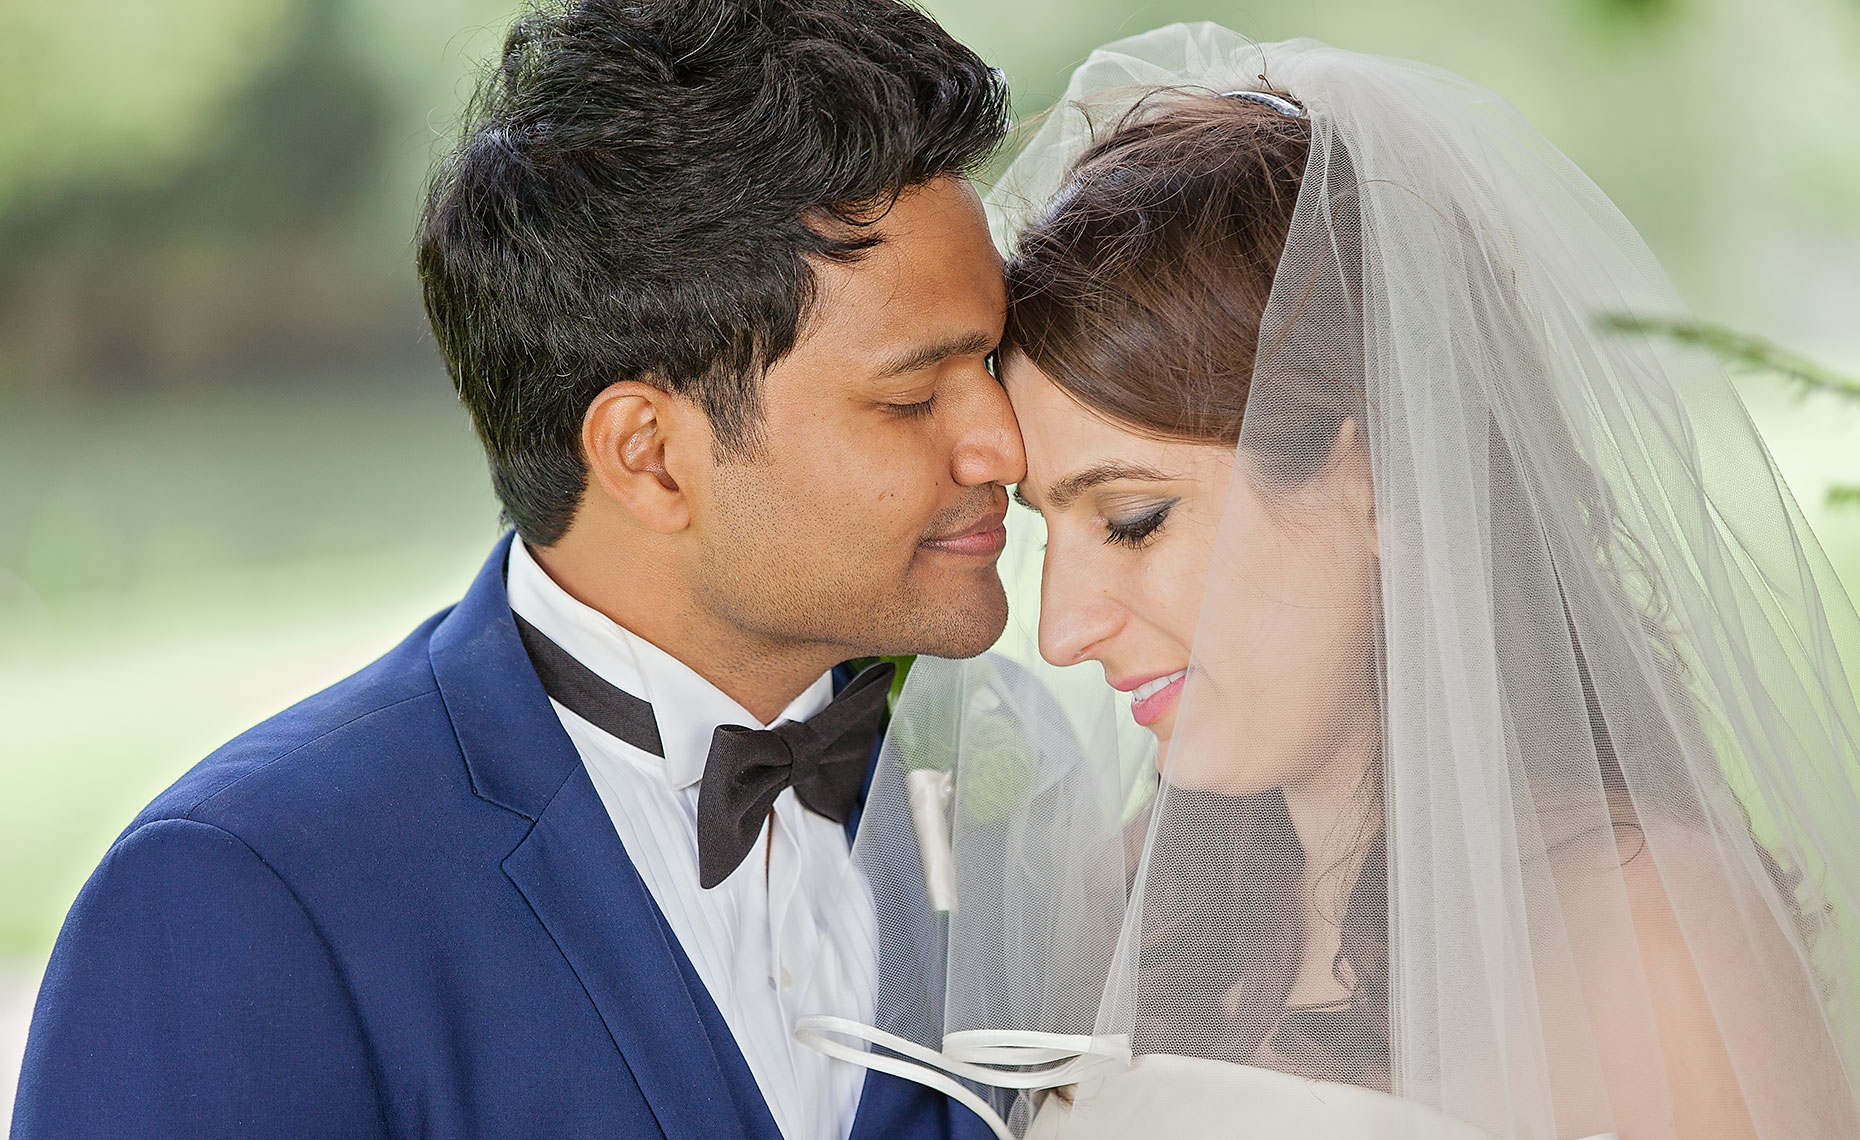 Handsome groom in blue suit with dark skin resting forehead on bride with white veil